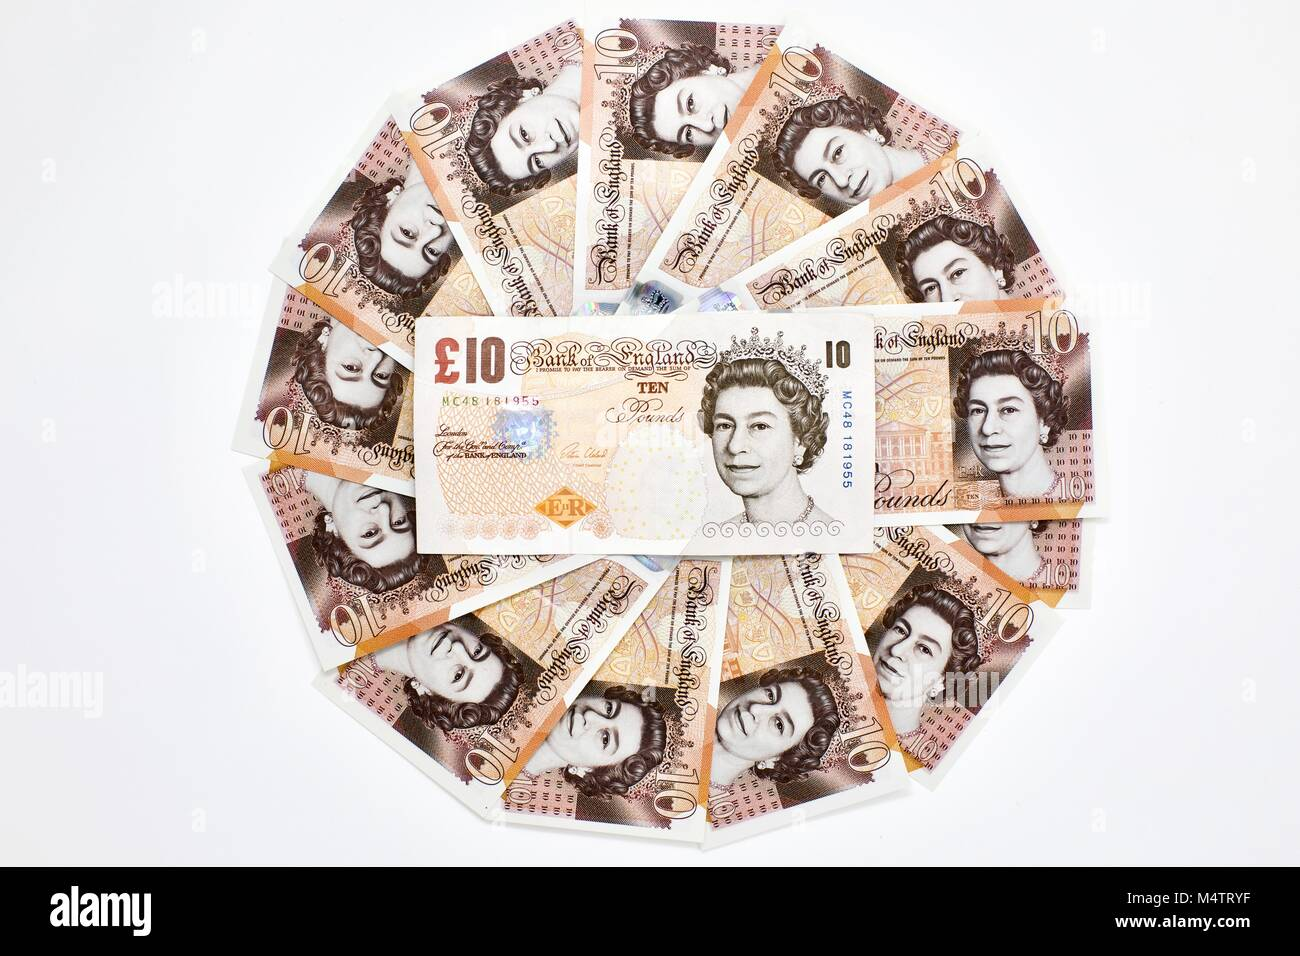 The old £10 banknote in the middle of a circle of the new-design polymer £10 banknotes on a white background - Stock Image